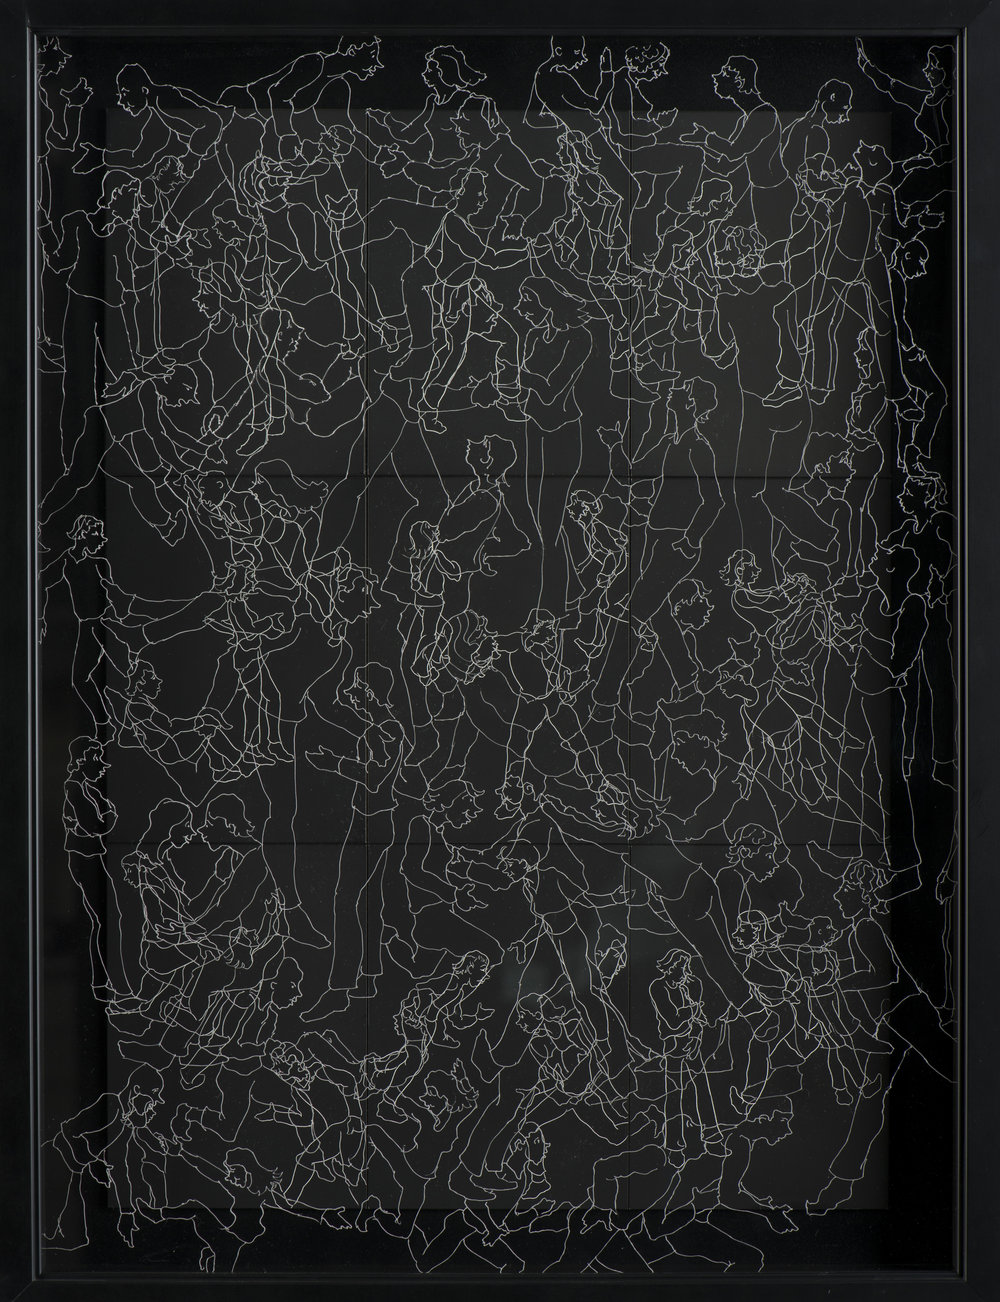 """INTERACTION 1 #3027 Black Scratchboard with Overlay of Etched Plexiglass Framed 19"""" x 22"""" $1500.00 Studio"""